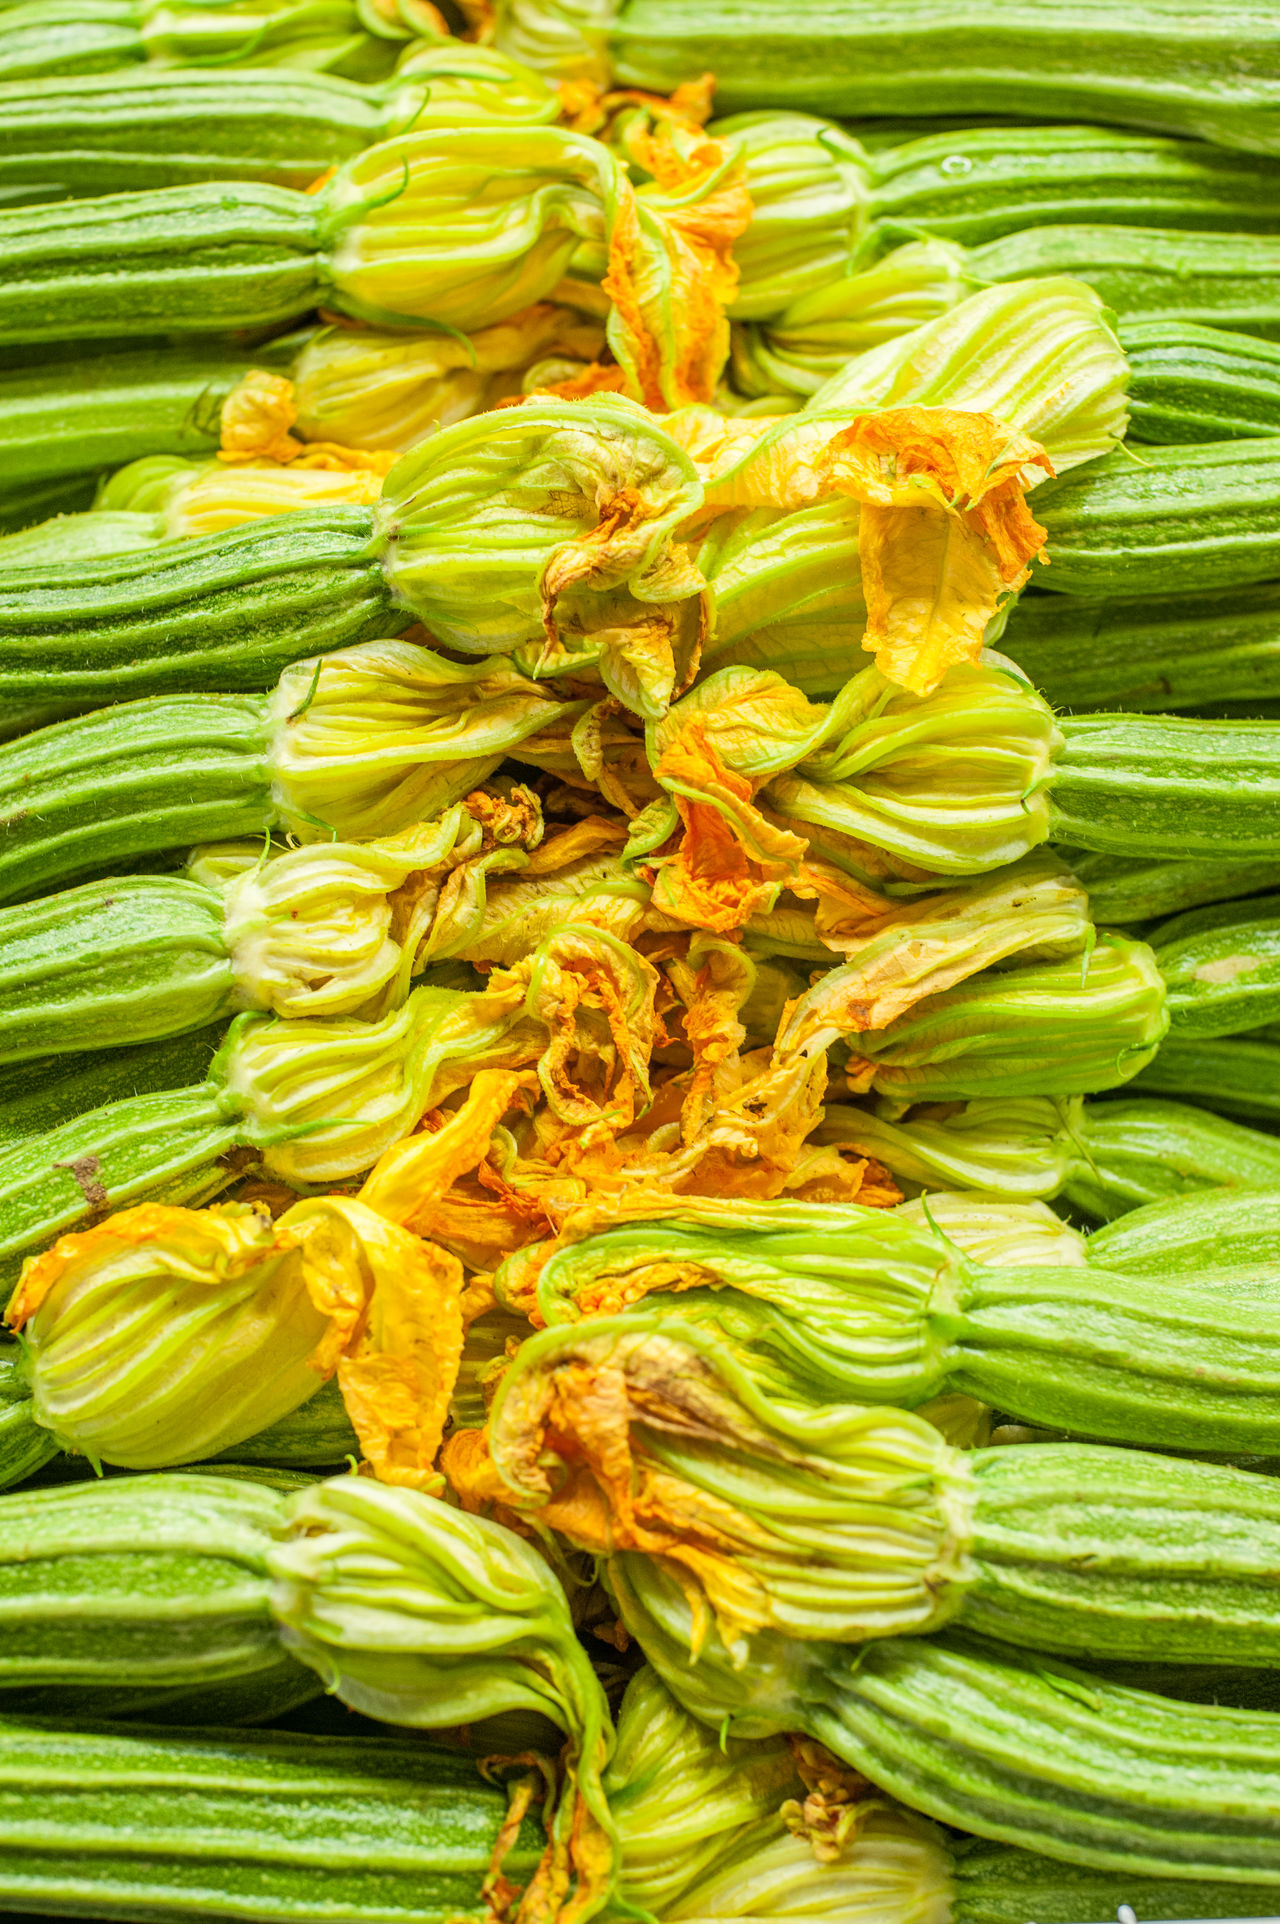 Many green zucchini with flowers on market stall Close-up Courgette Flower Food Fresh Freshness Healthy Eating Many Market Market Stall No People Raw Seasonal Vegetables Zucchini